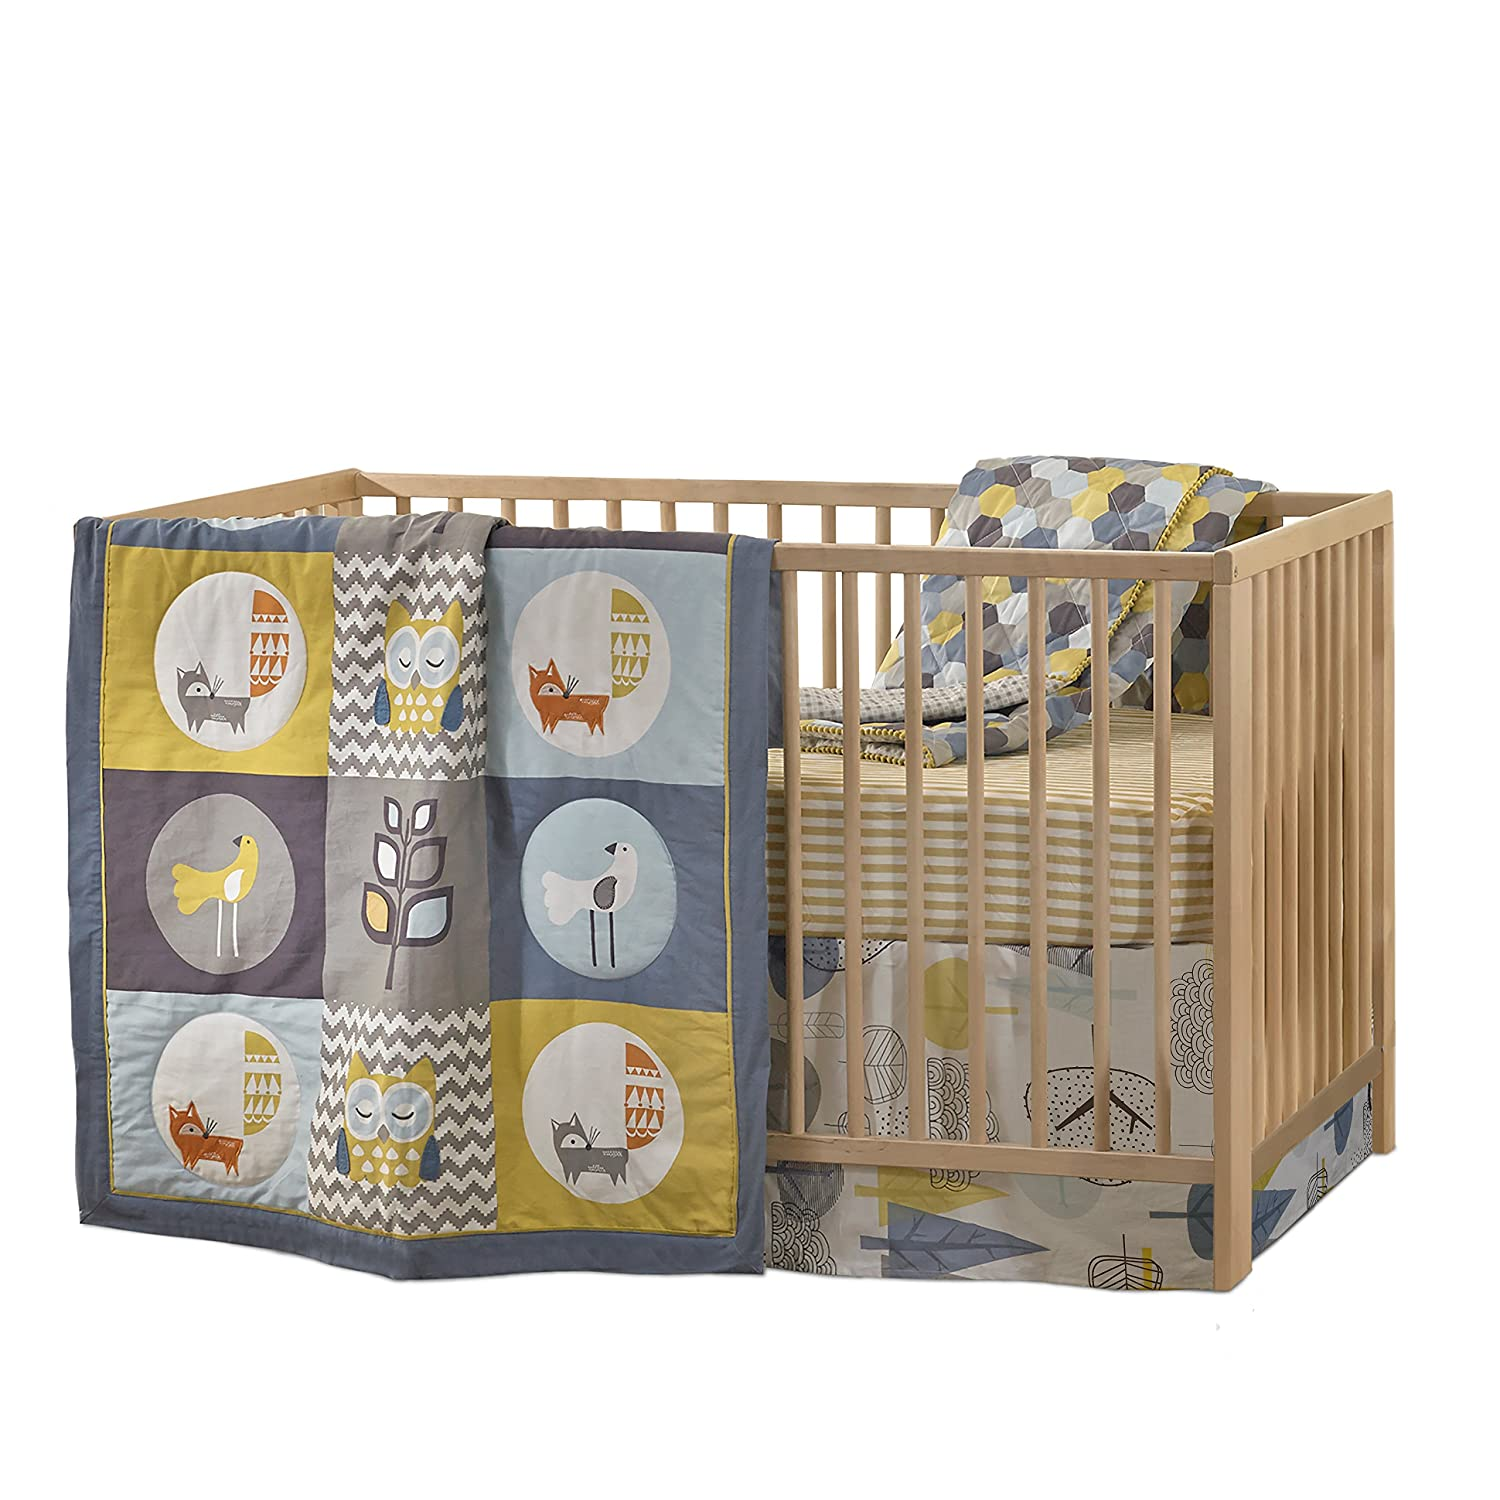 Lolli Living 4-Piece Baby Bedding Crib Set with Woods Pattern. Complete Set with Quilt, 2 Fitted Sheets, and Bed Skirt (Yellow and Blue).